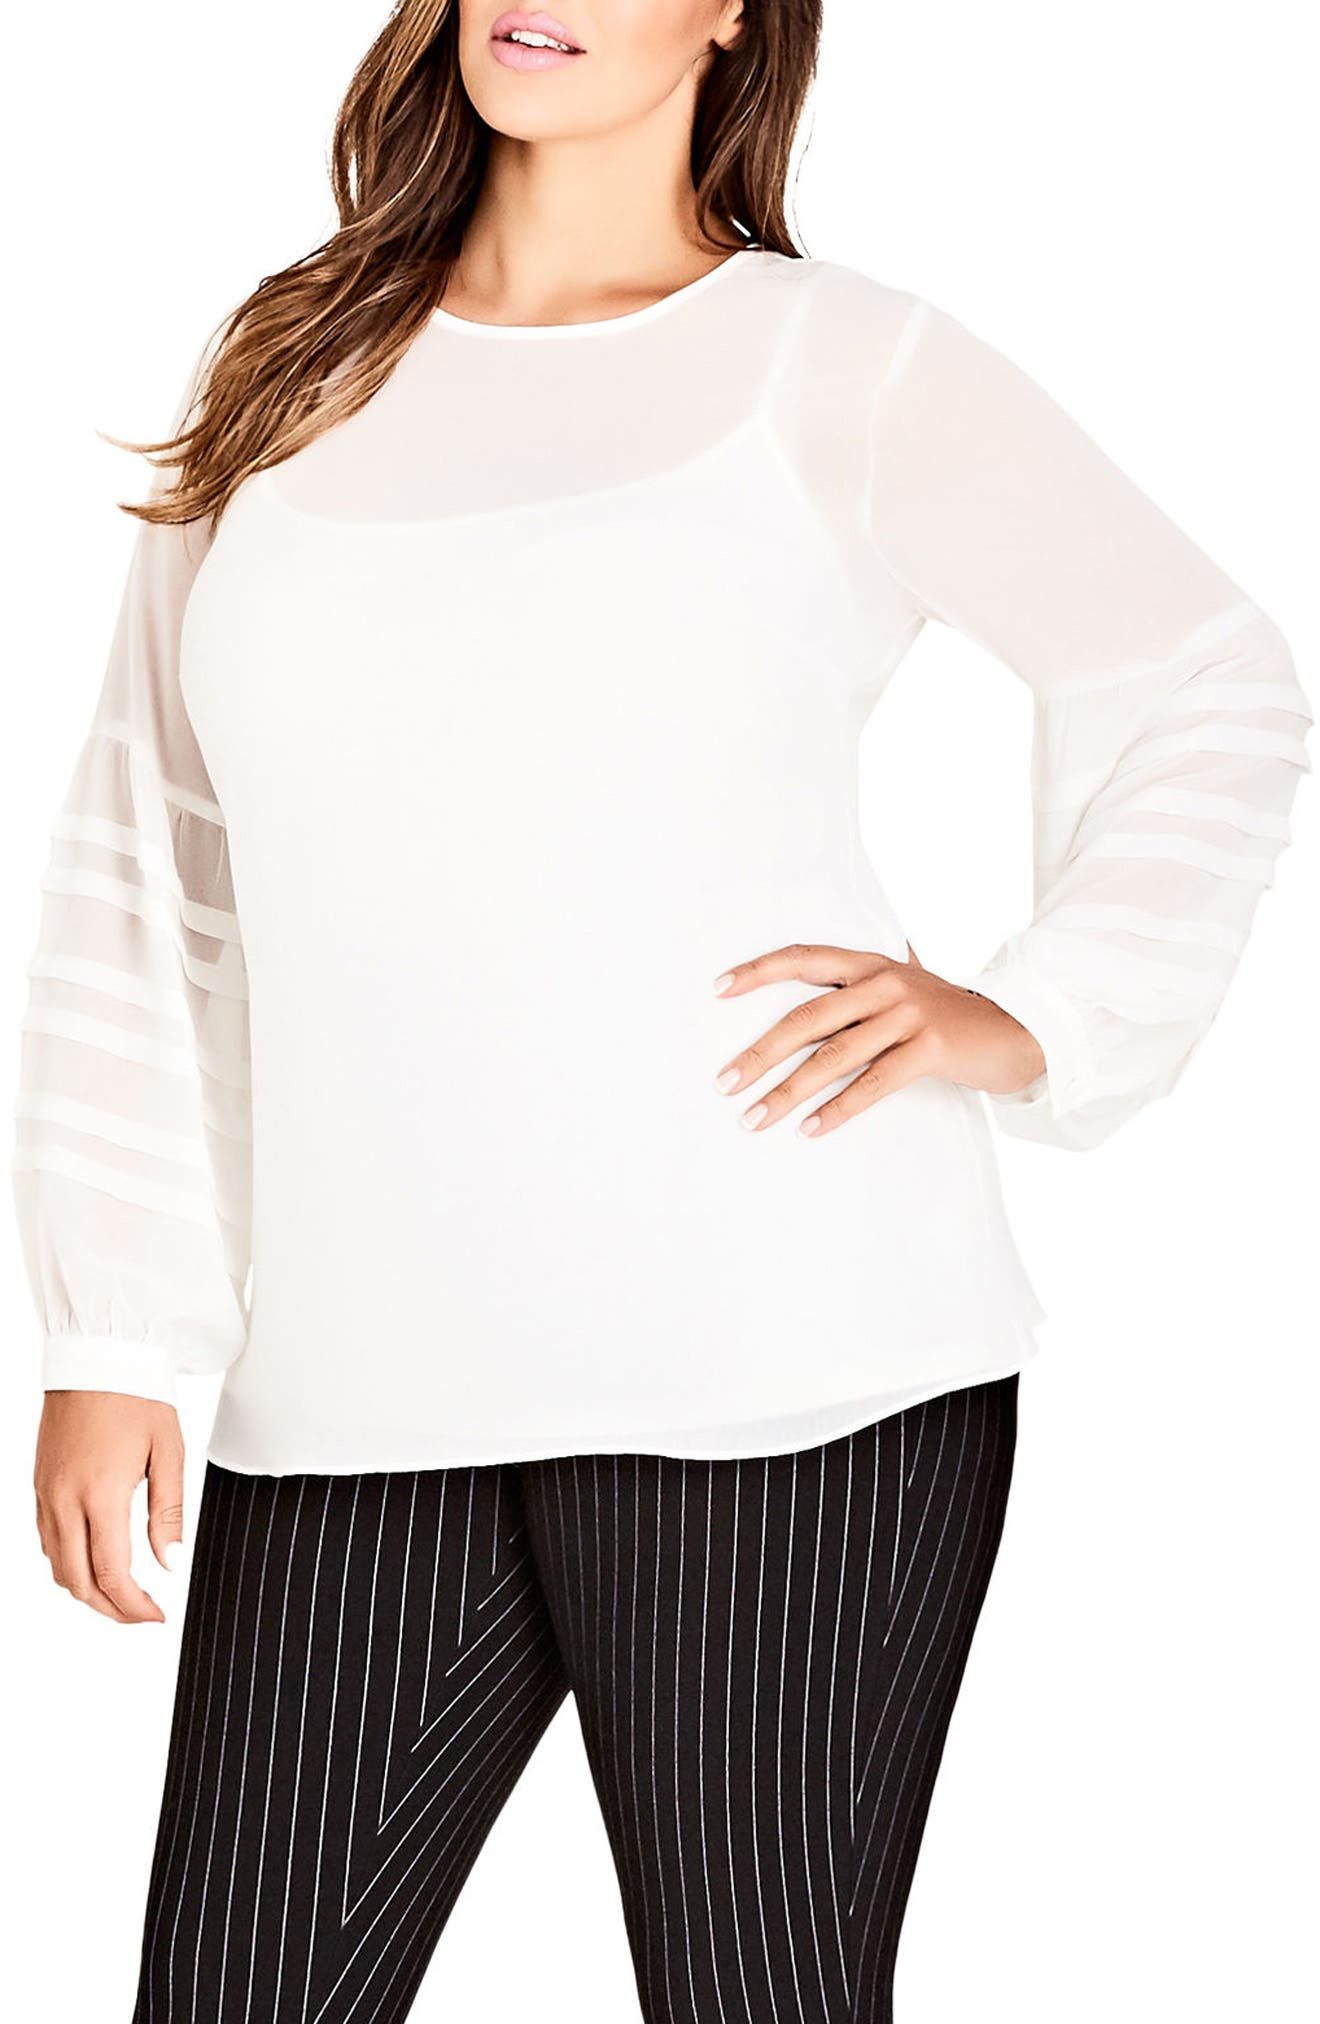 Seraphina Balloon Sleeve Top,                             Main thumbnail 1, color,                             Ivory